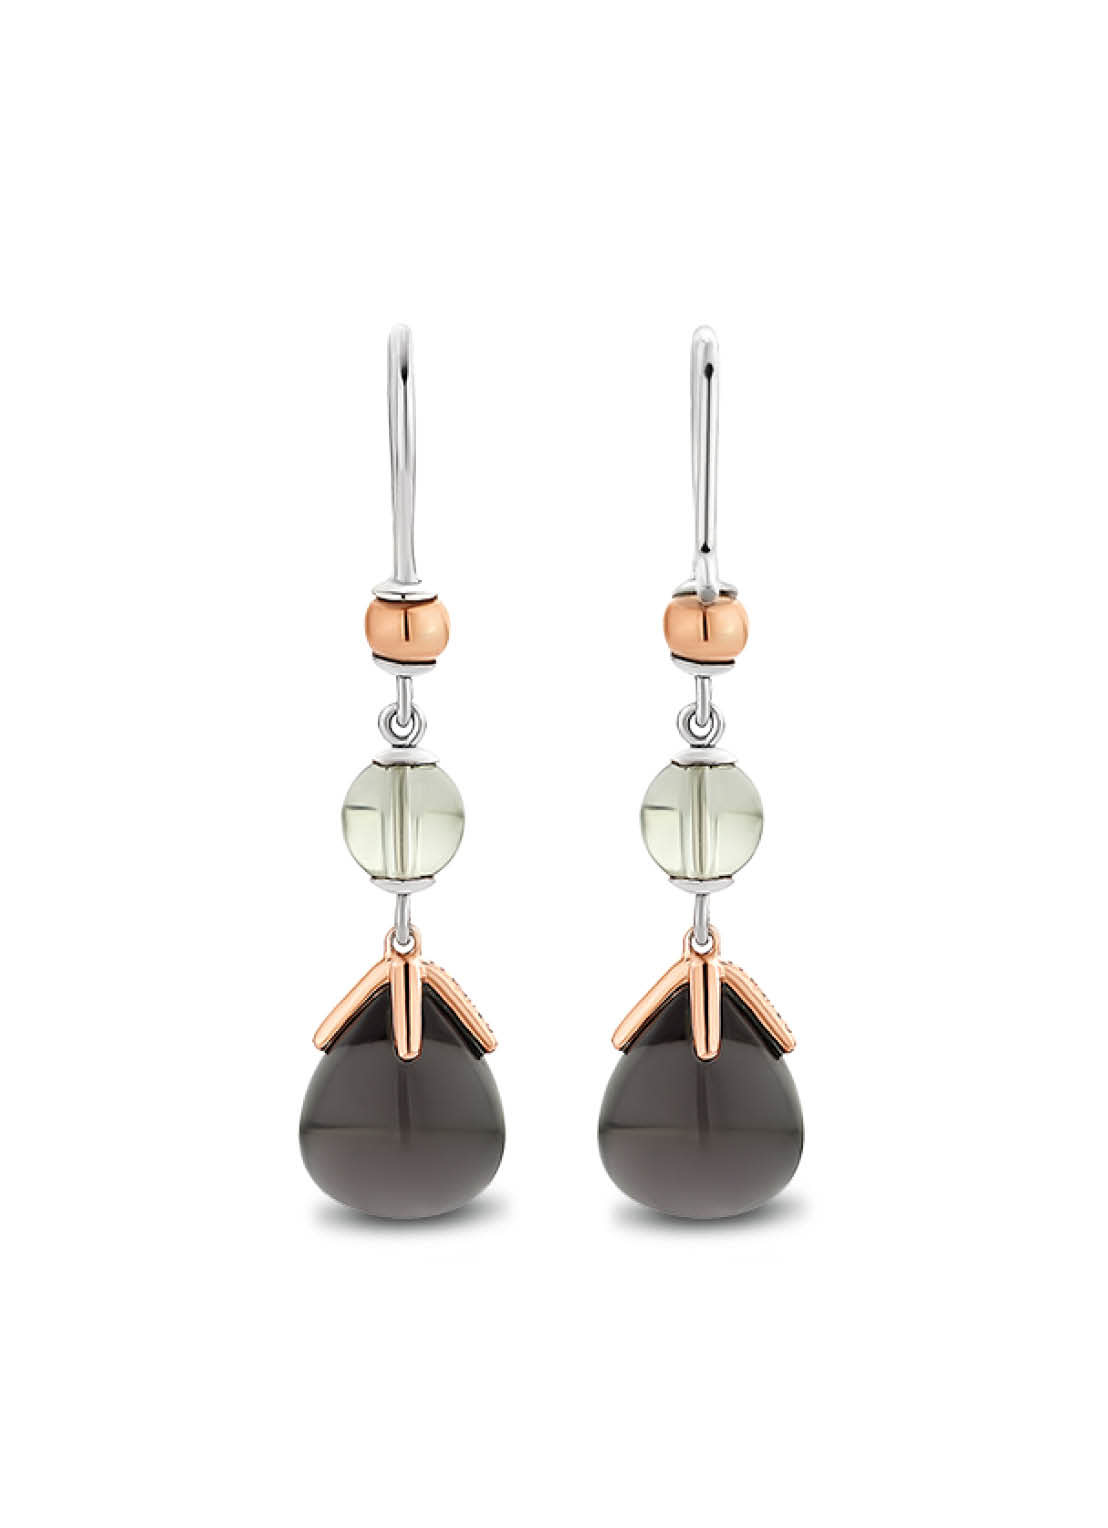 TI SENTO - Milano Earrings 7810GB-4